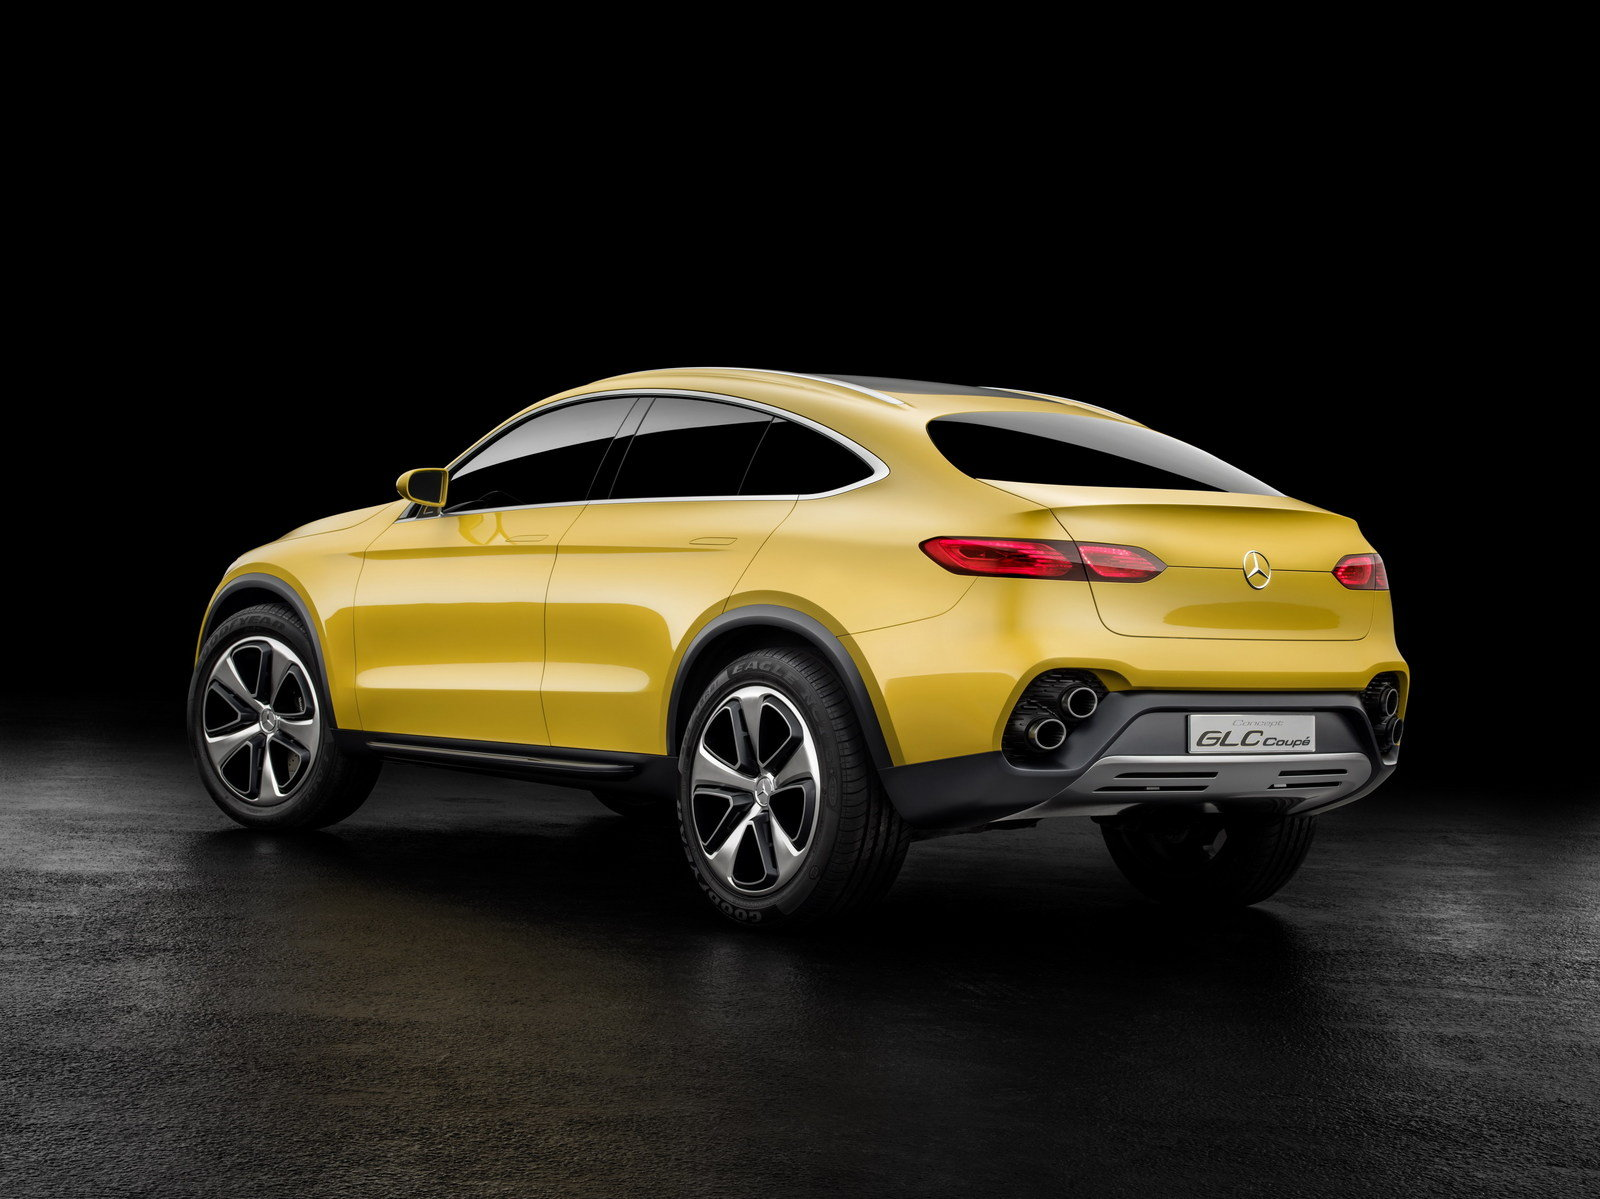 Mercedes benz glc class coupe car wallpapers for Glc mercedes benz